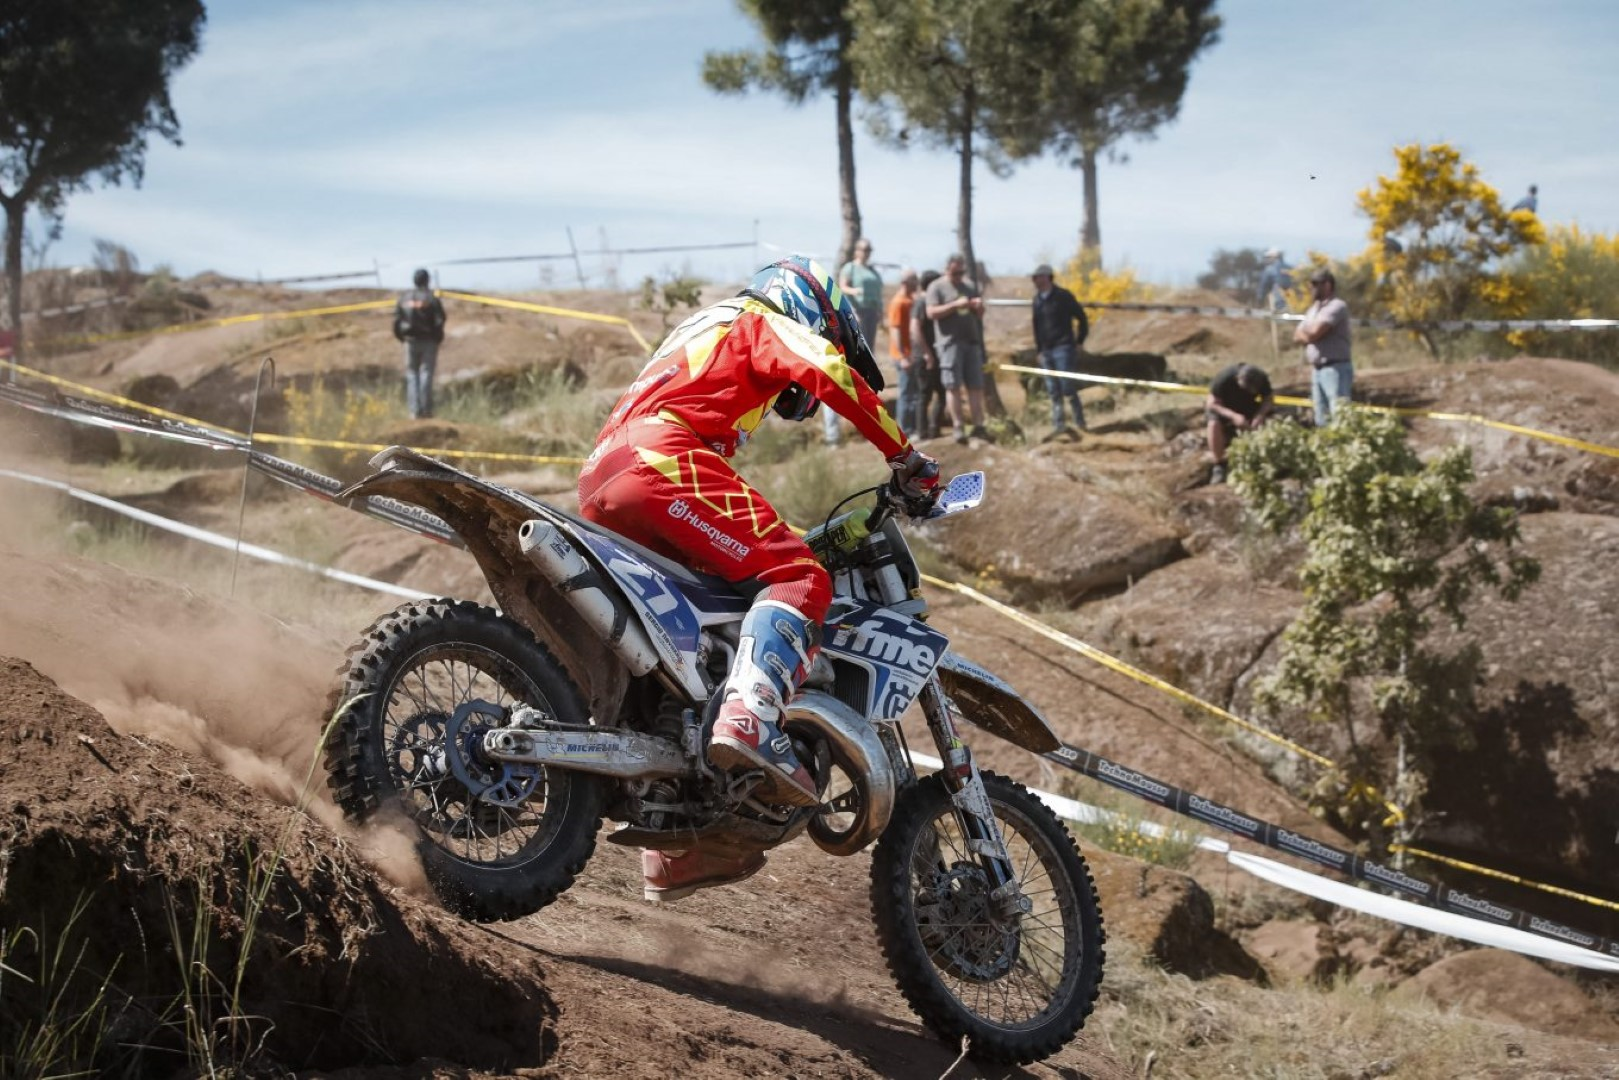 Enric Francisco triunfa en Junior en el EnduroGP de Portugal